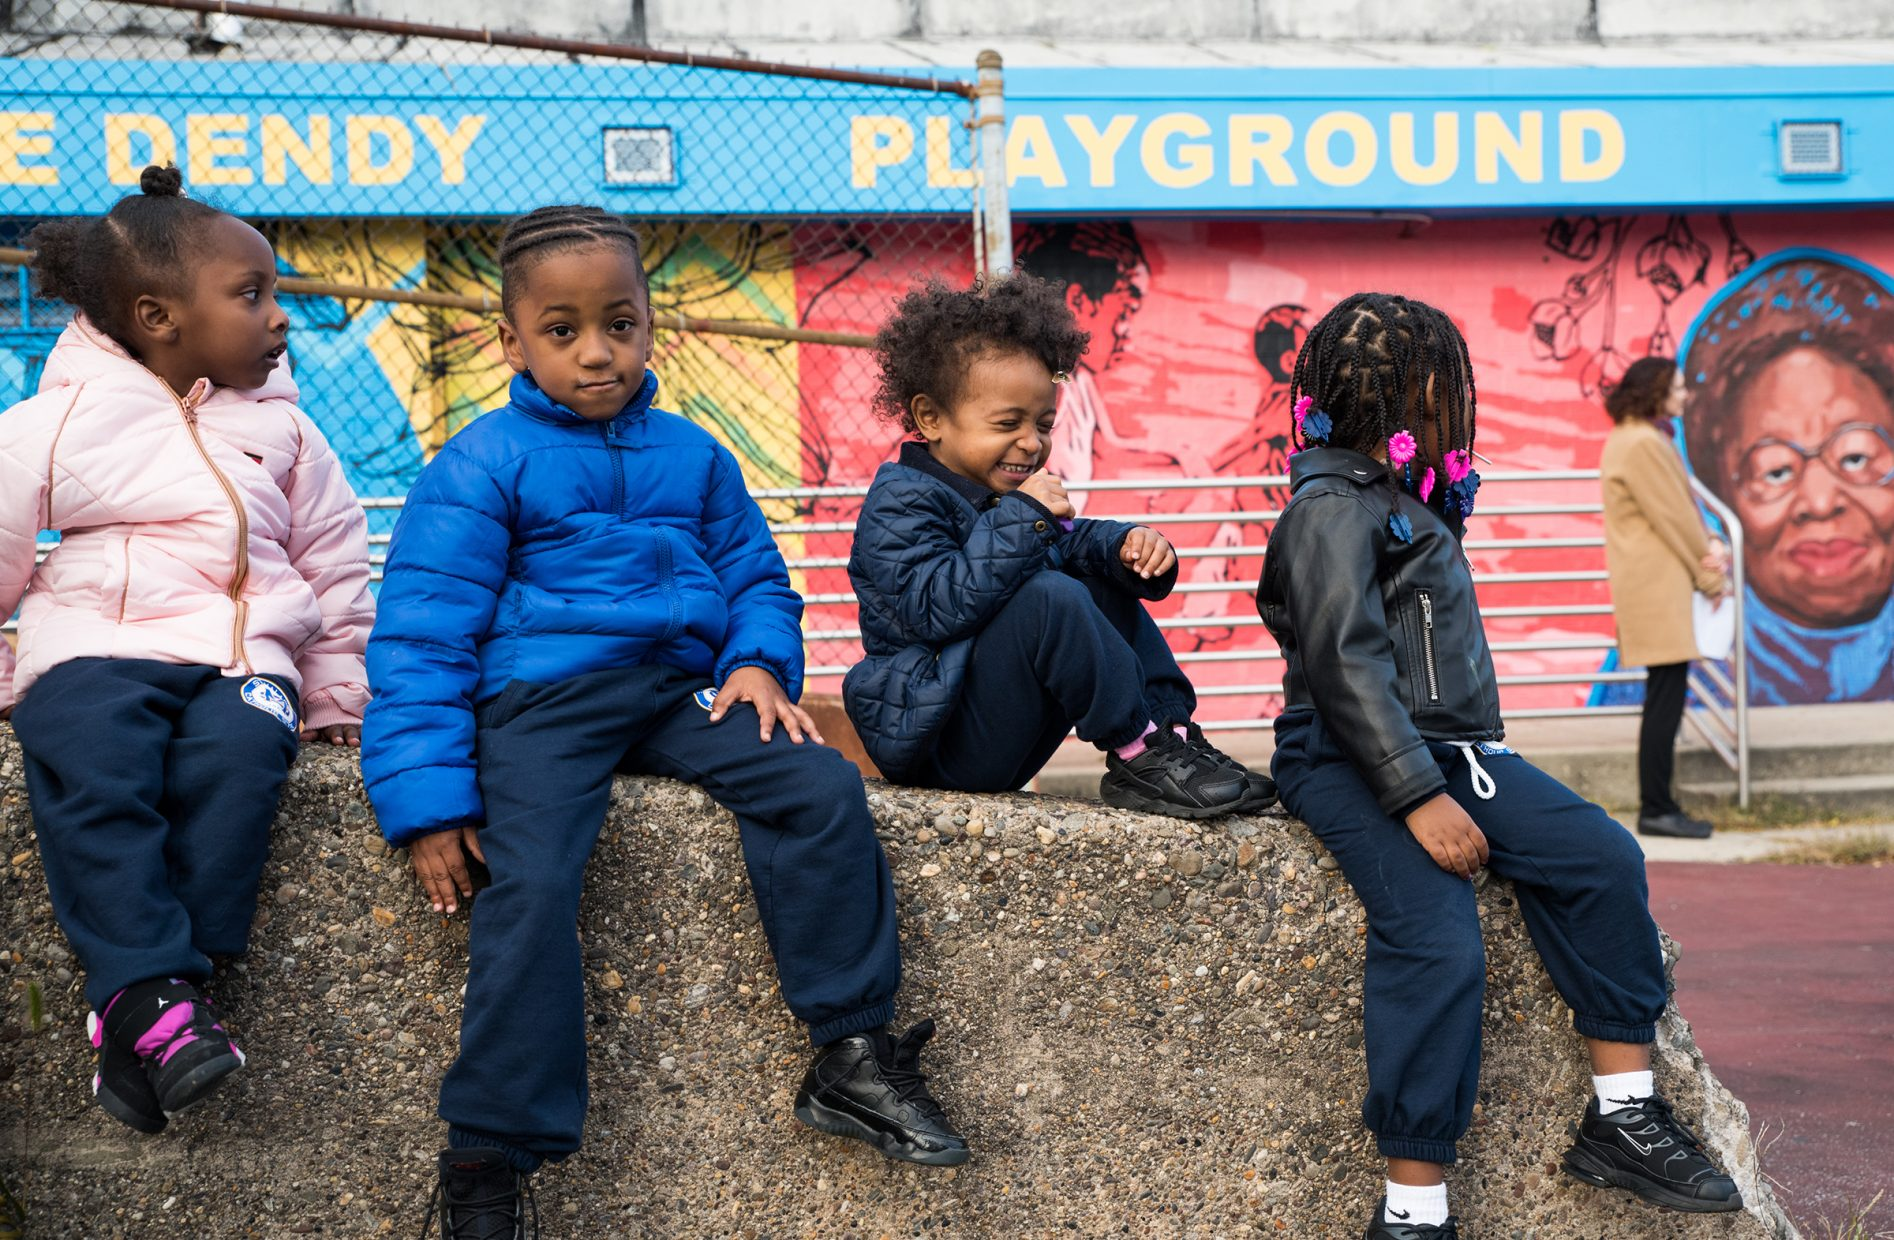 Four children sit on a ledge at the playground in front of a bright mural.